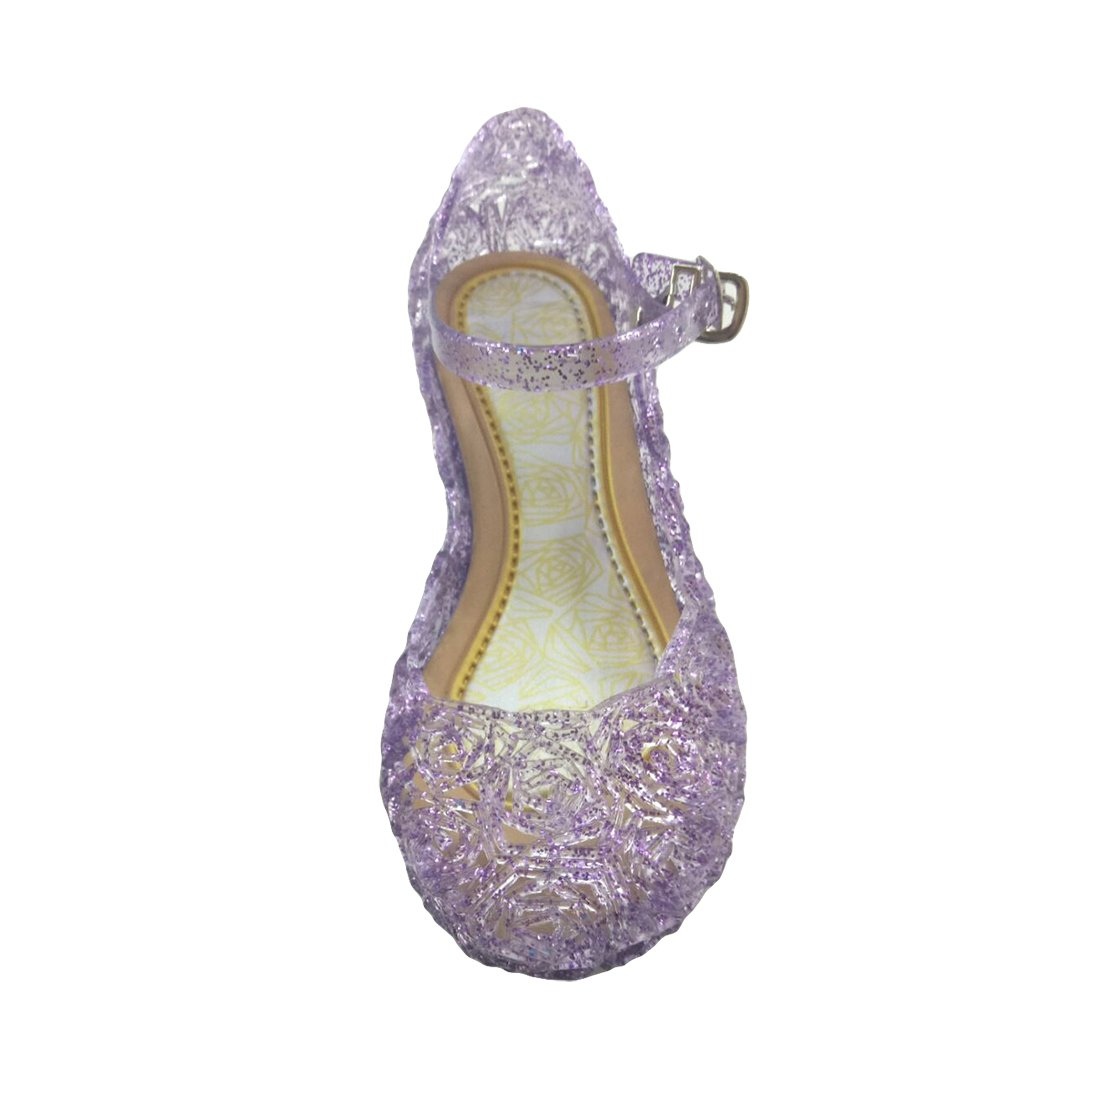 O&N Princess Girls Queen Dress Up Cosplay Jelly Shoes for Kids Toddler Dance Party Sandals Mary Janes Purple 8.5 M US Toddler